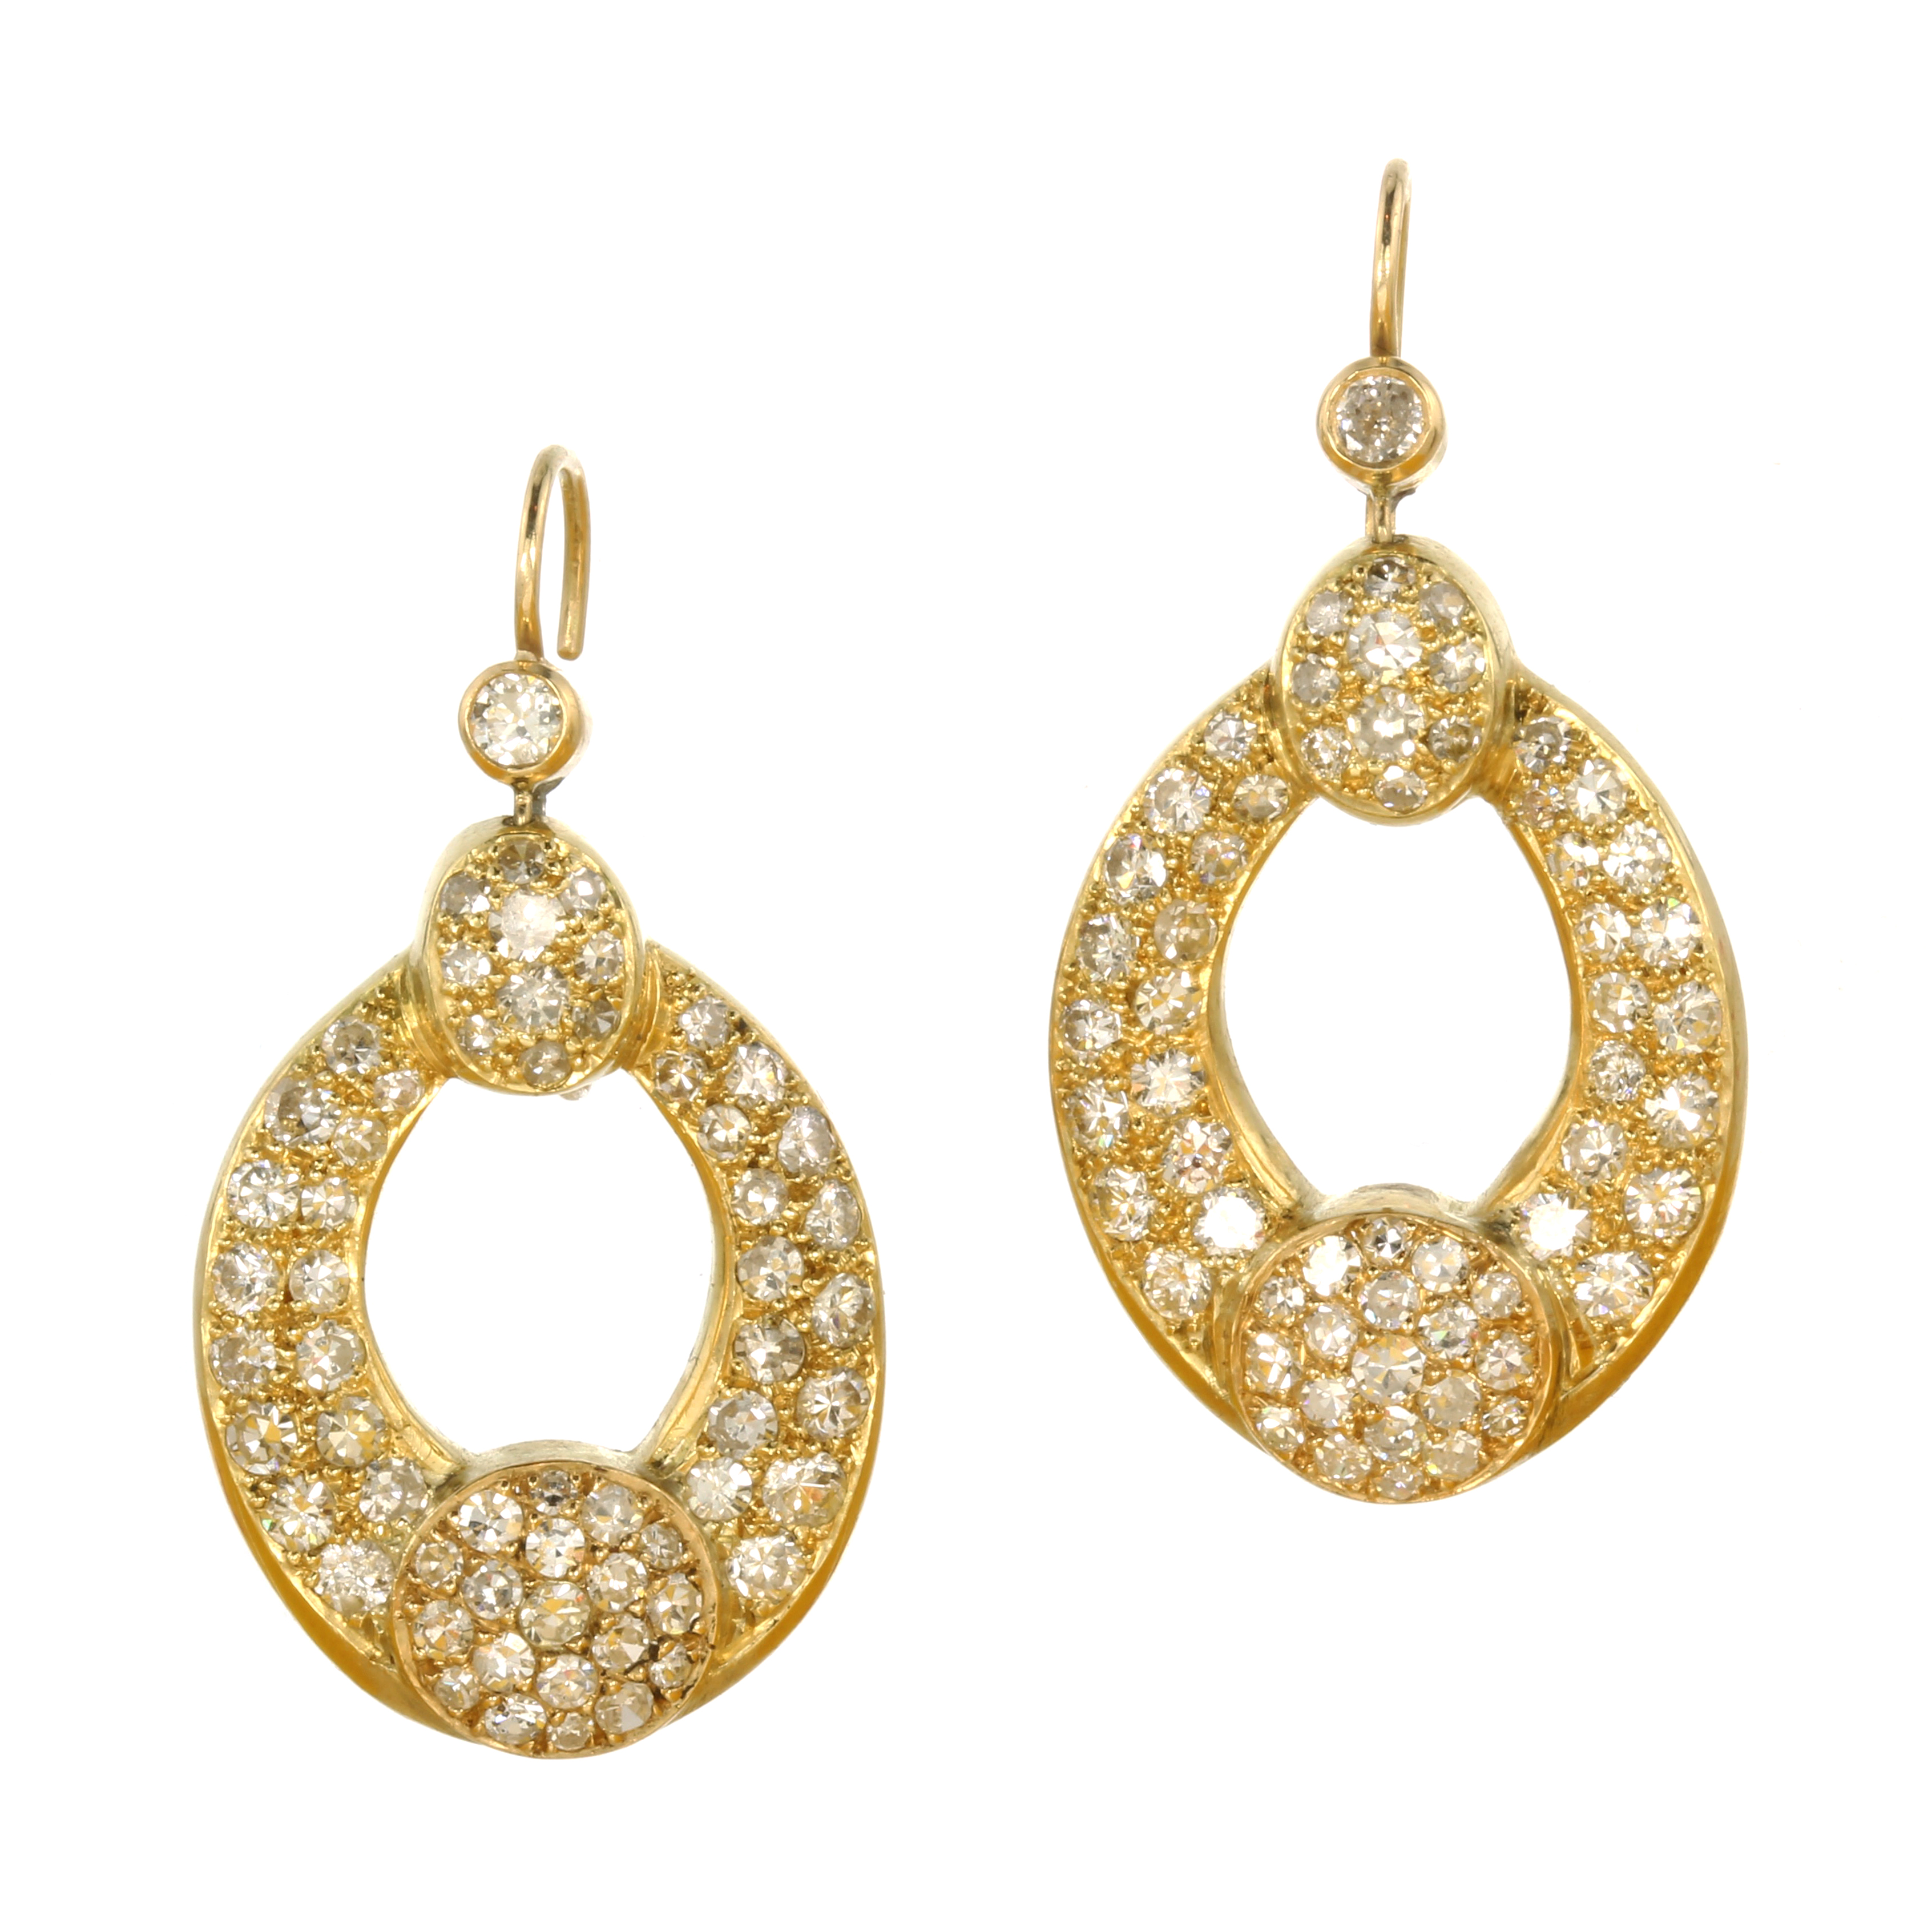 Los 55 - A PAIR OF DIAMOND EARRINGS in high carat yellow gold each comprising two graduated diamond set